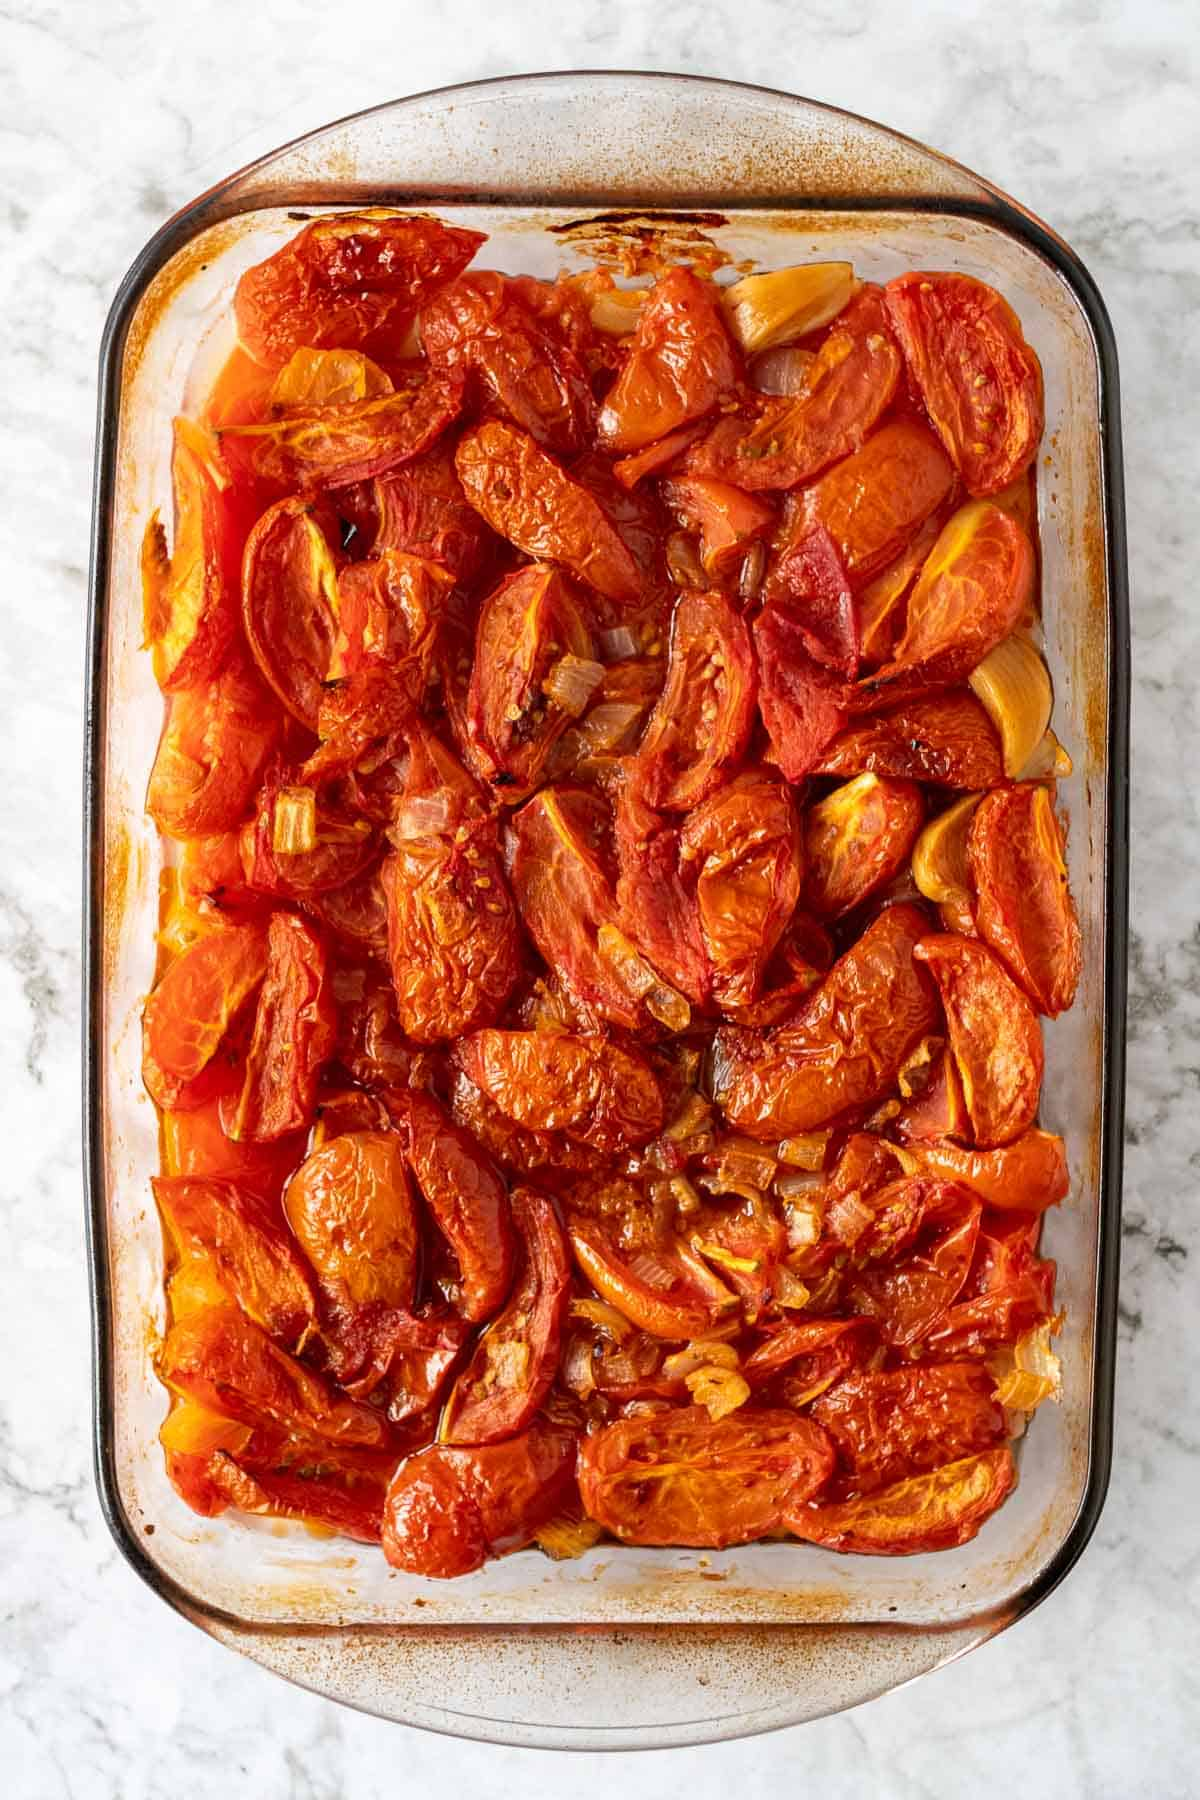 Roasted tomatoes in a glass baking pan